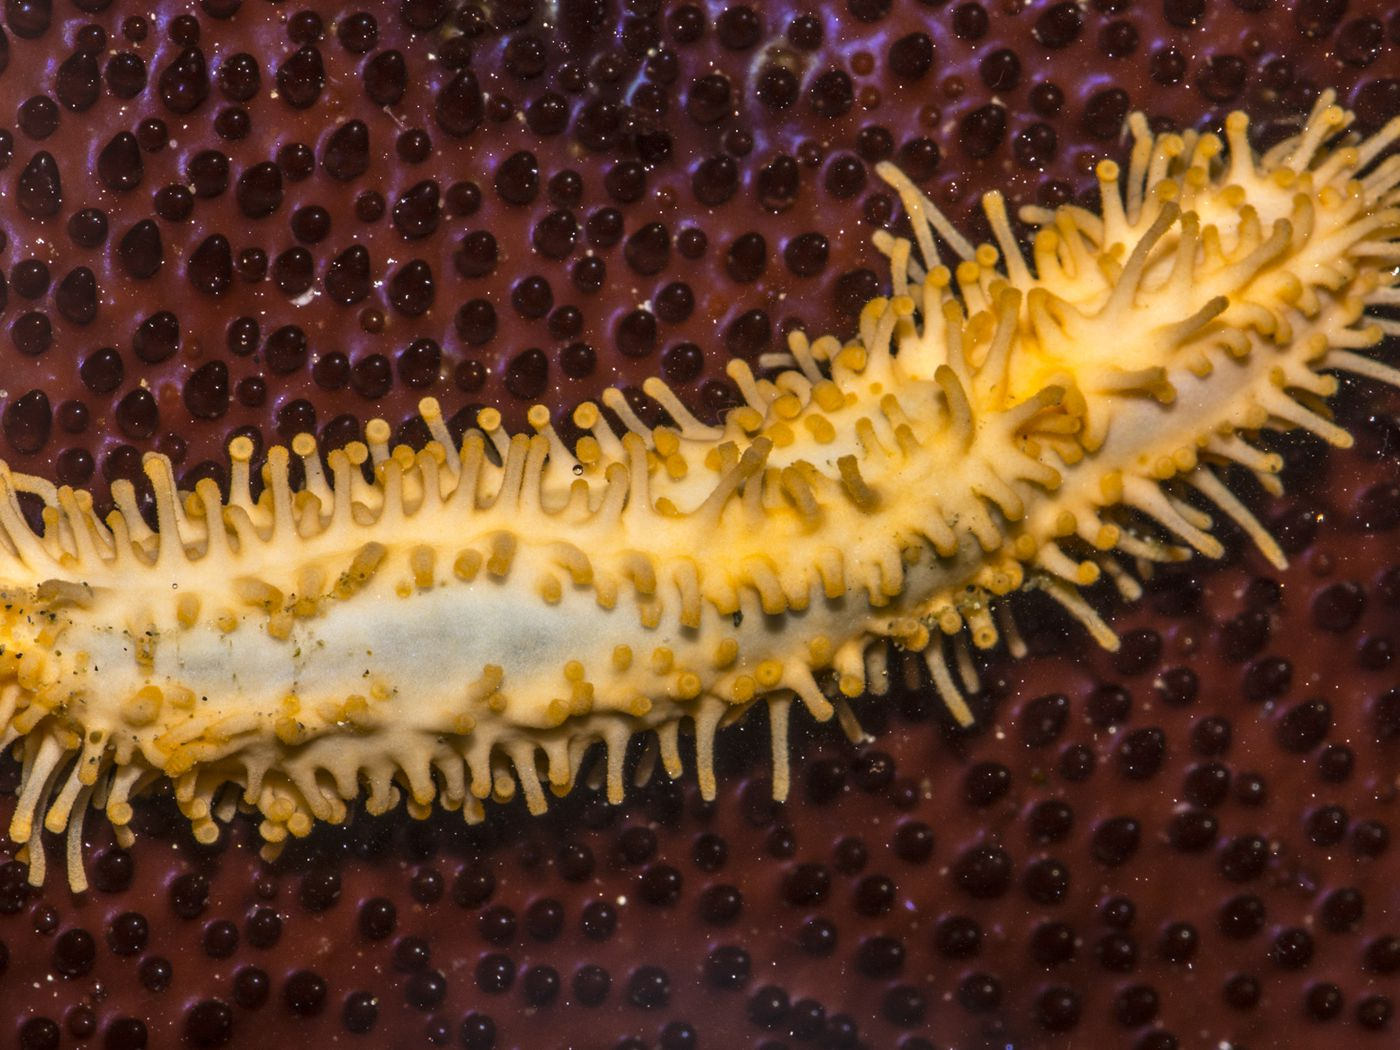 The Verge Review Of Animals The Sea Cucumber The Verge